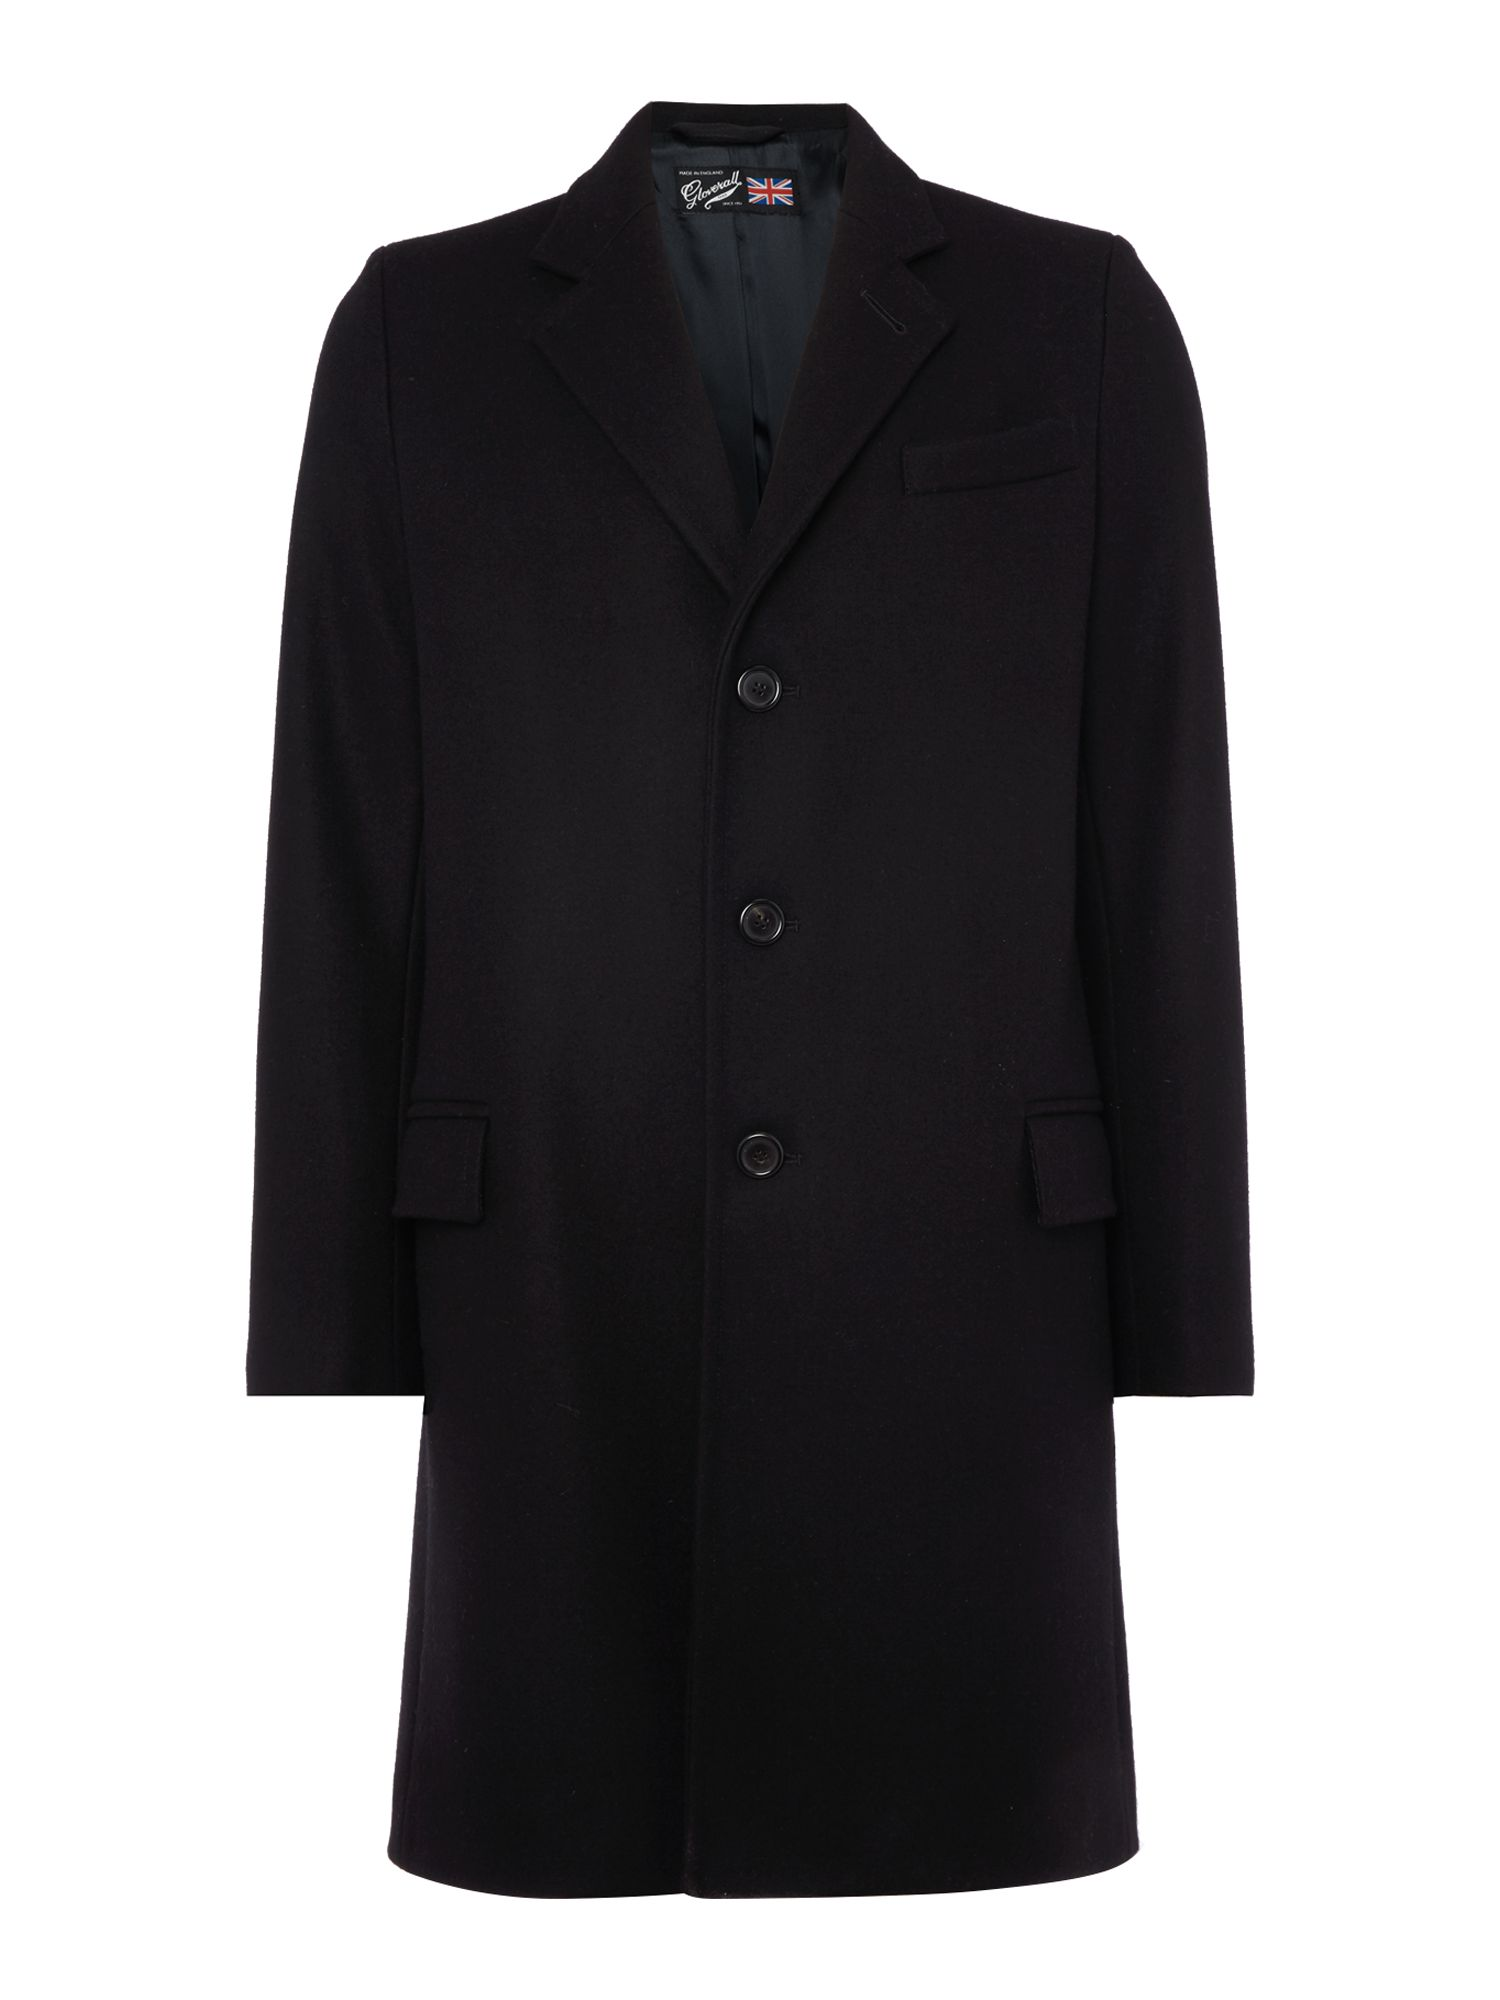 Gloverall Men's Gloverall Lined Chesterfield Coat, Black